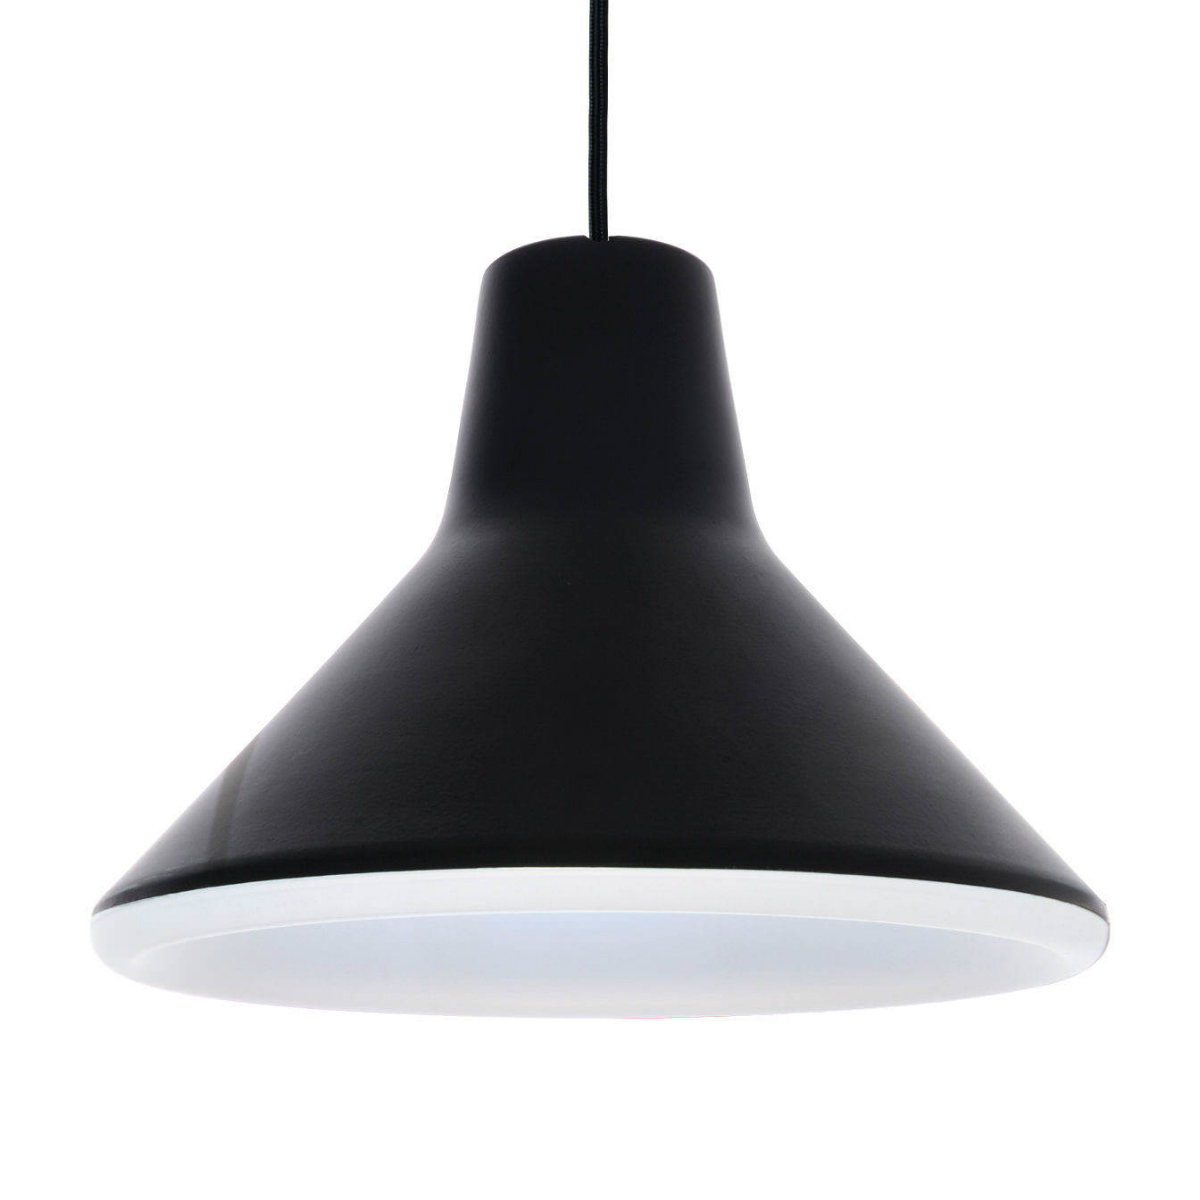 Archetype Pendant Lamp 10W LED Black